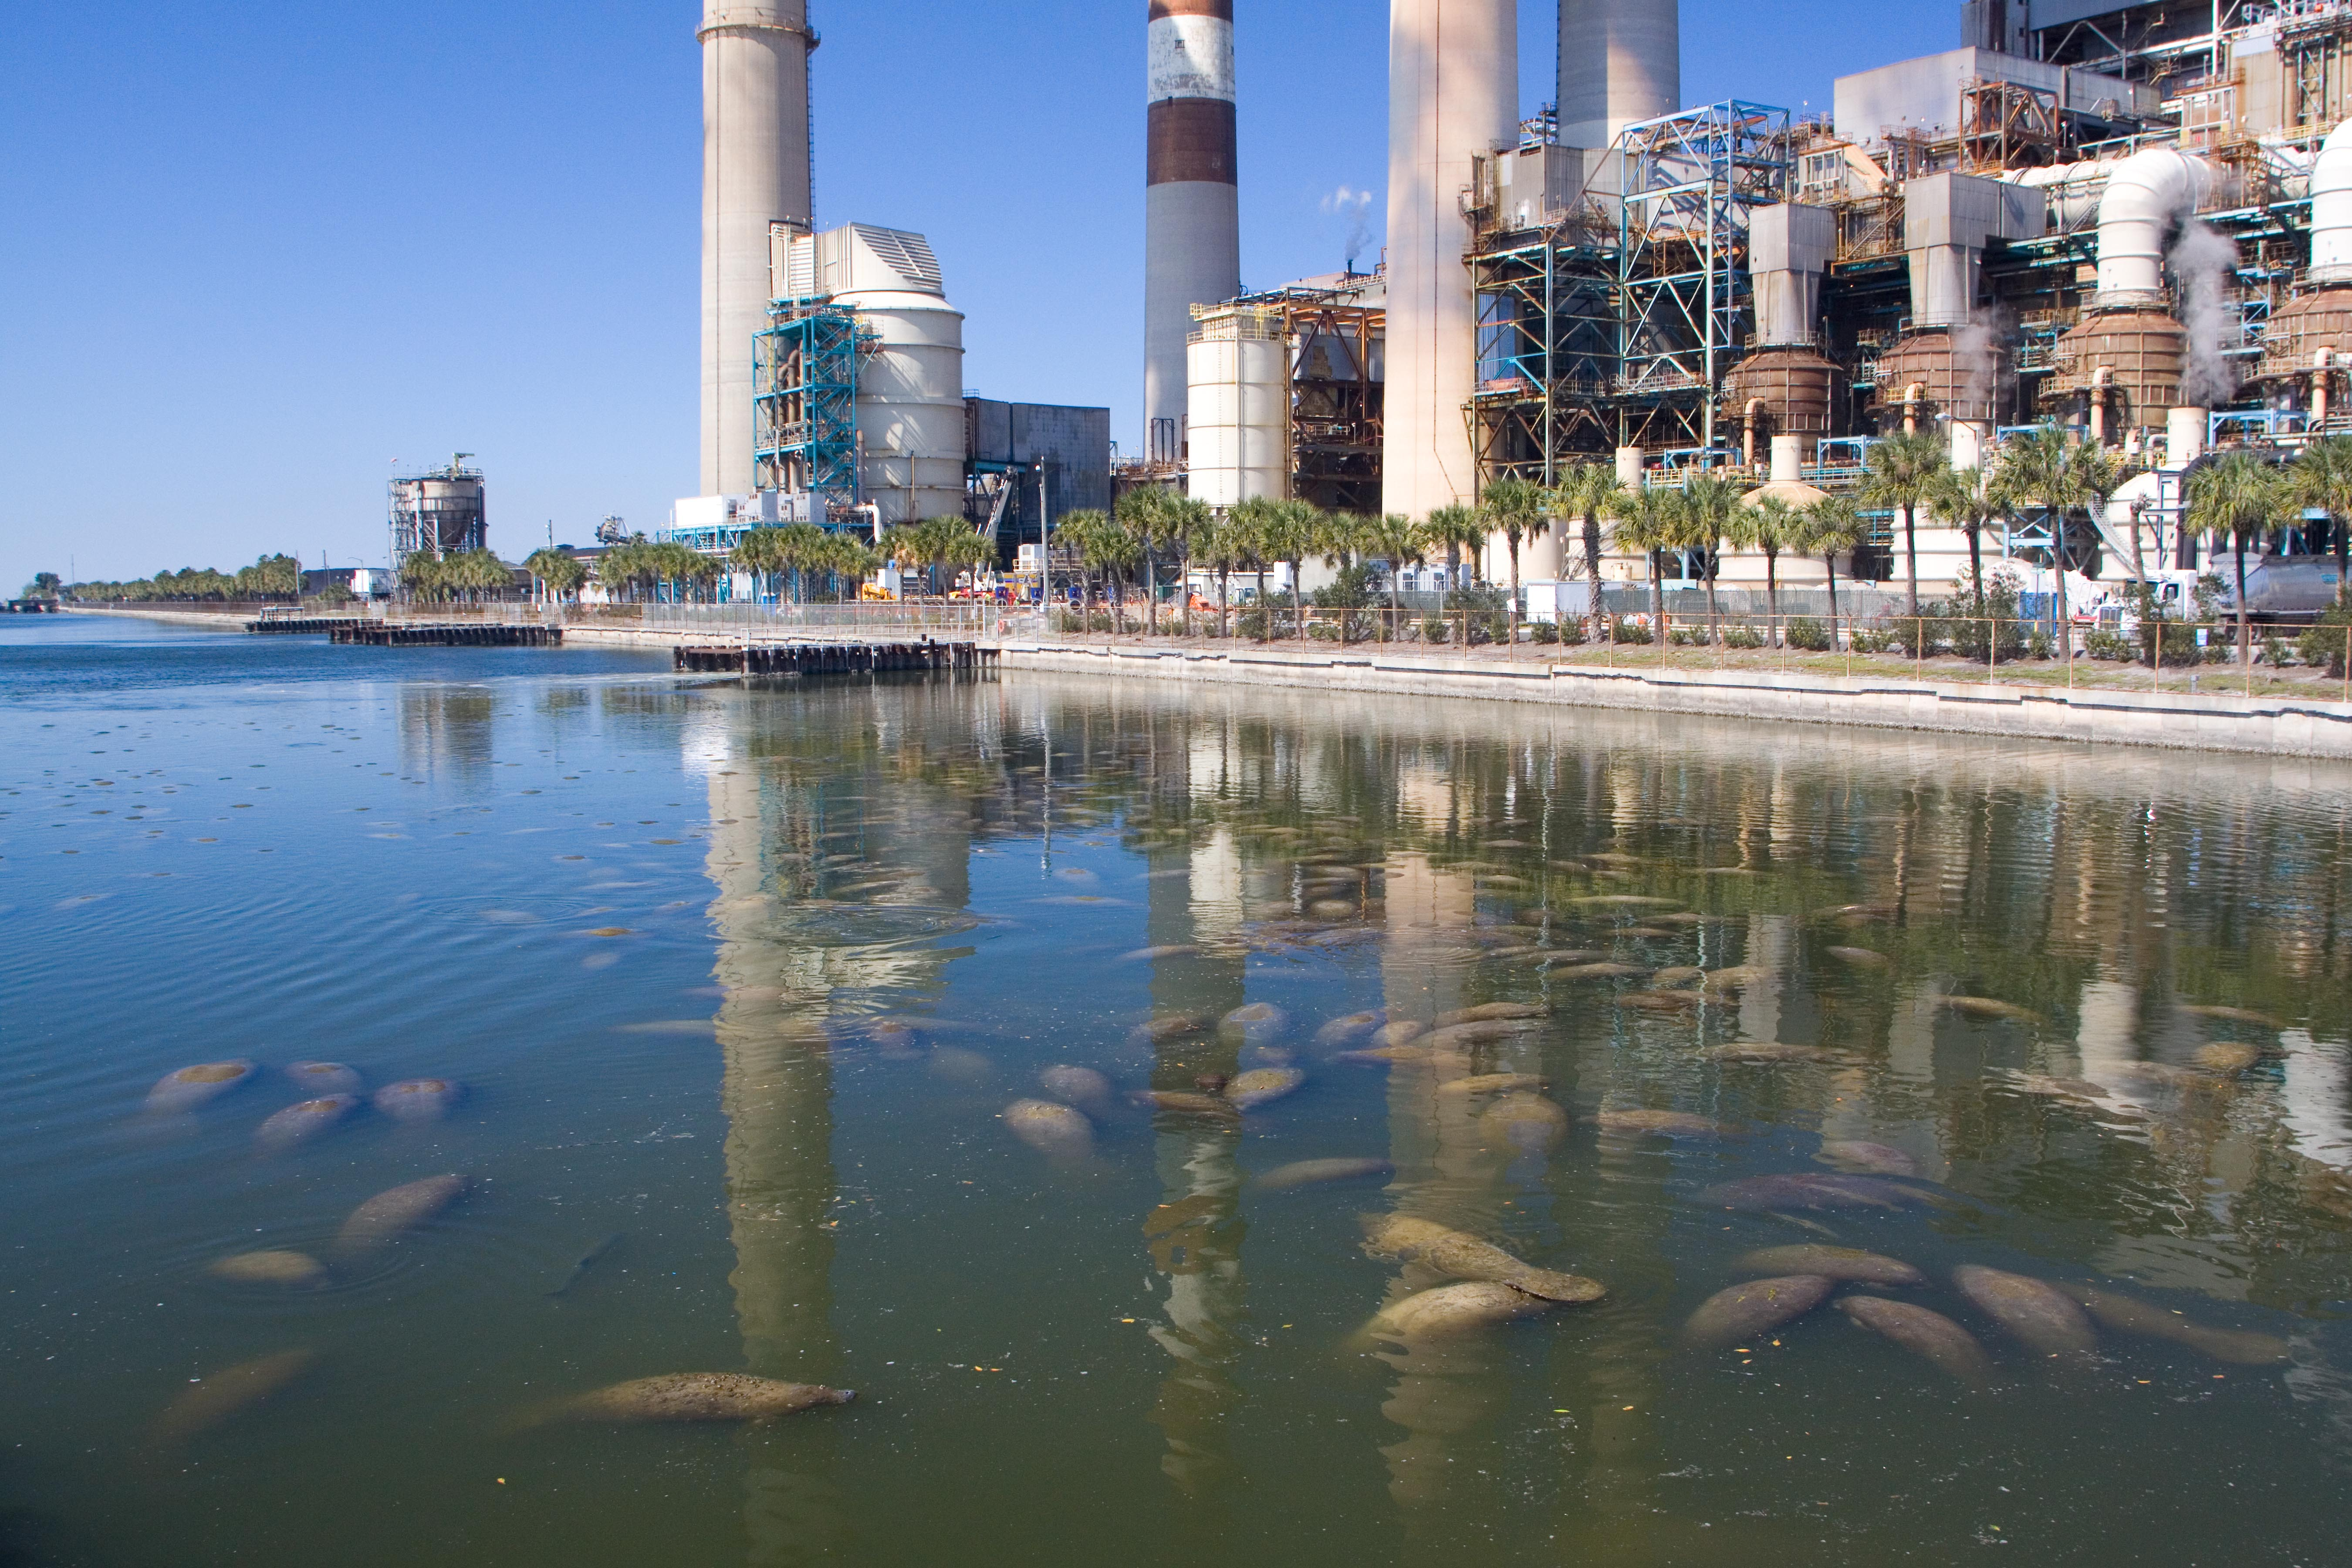 Manatees at the TECO Powerplant by David Schrichte (1)